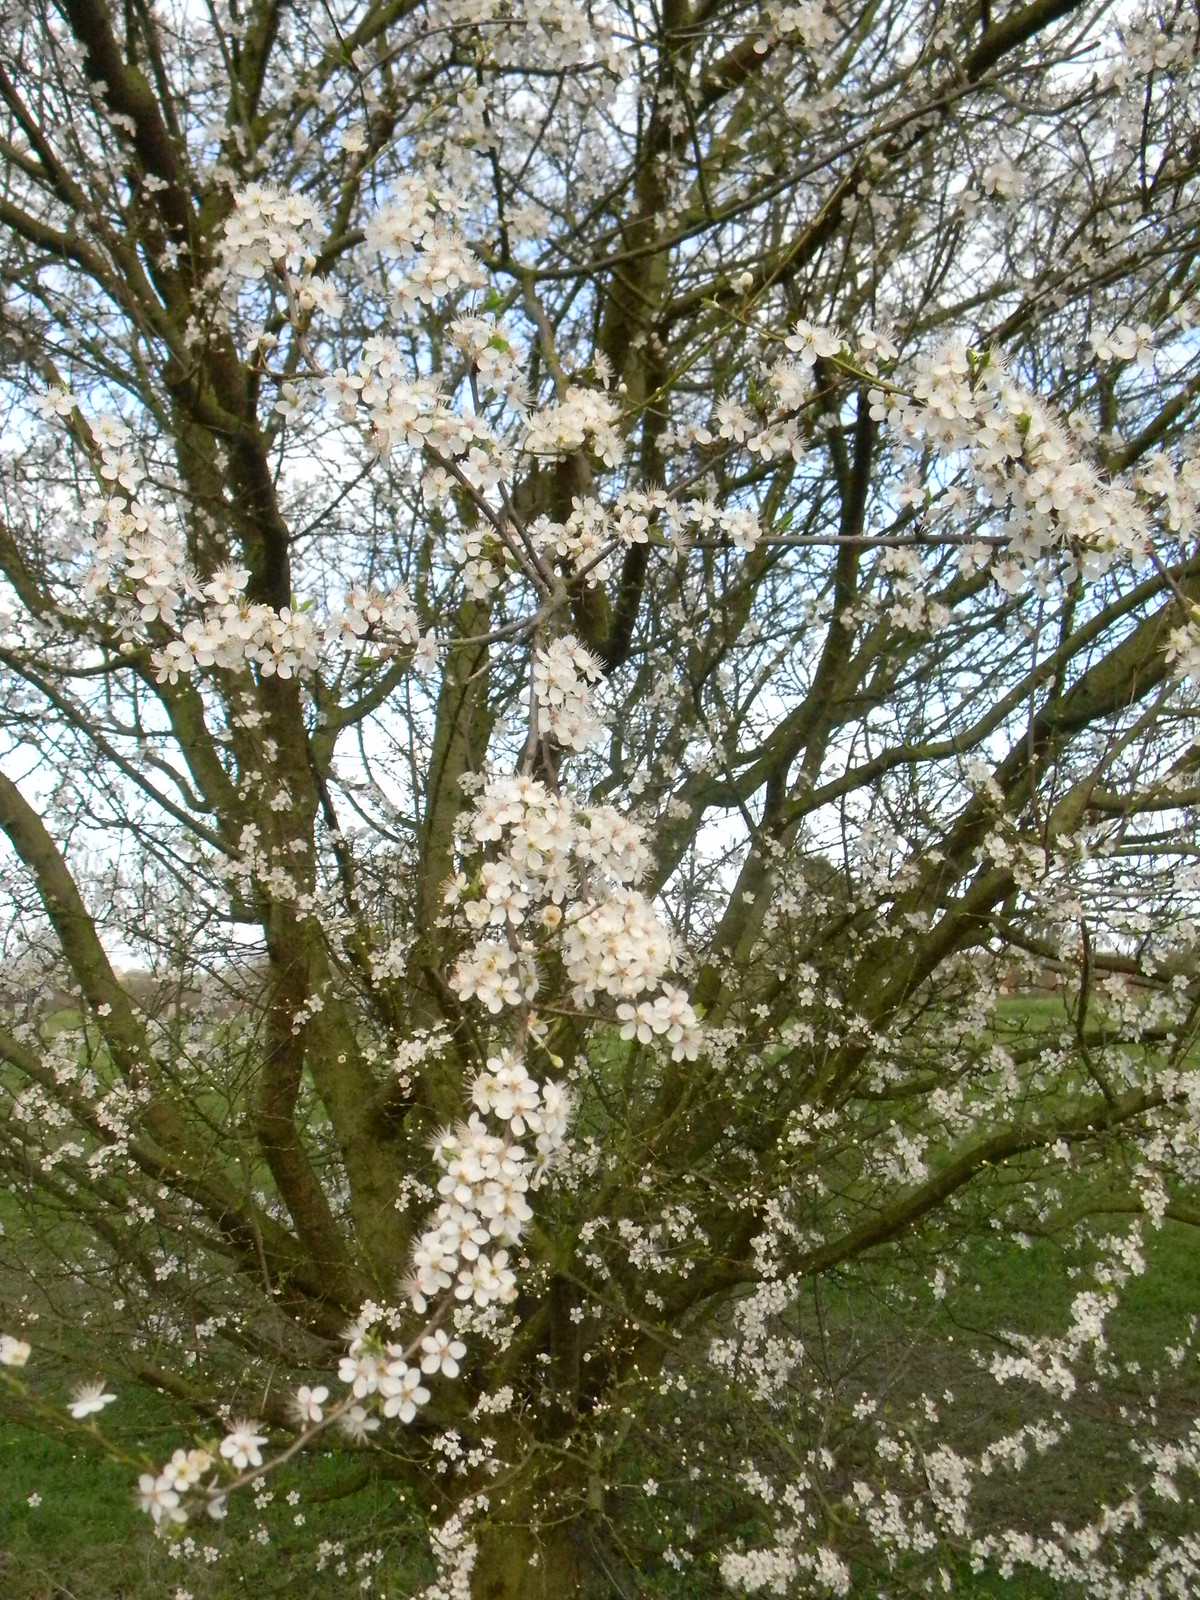 Early blossom Dare I hazard a guess? Cherry plum... Wakes Colne to Bures